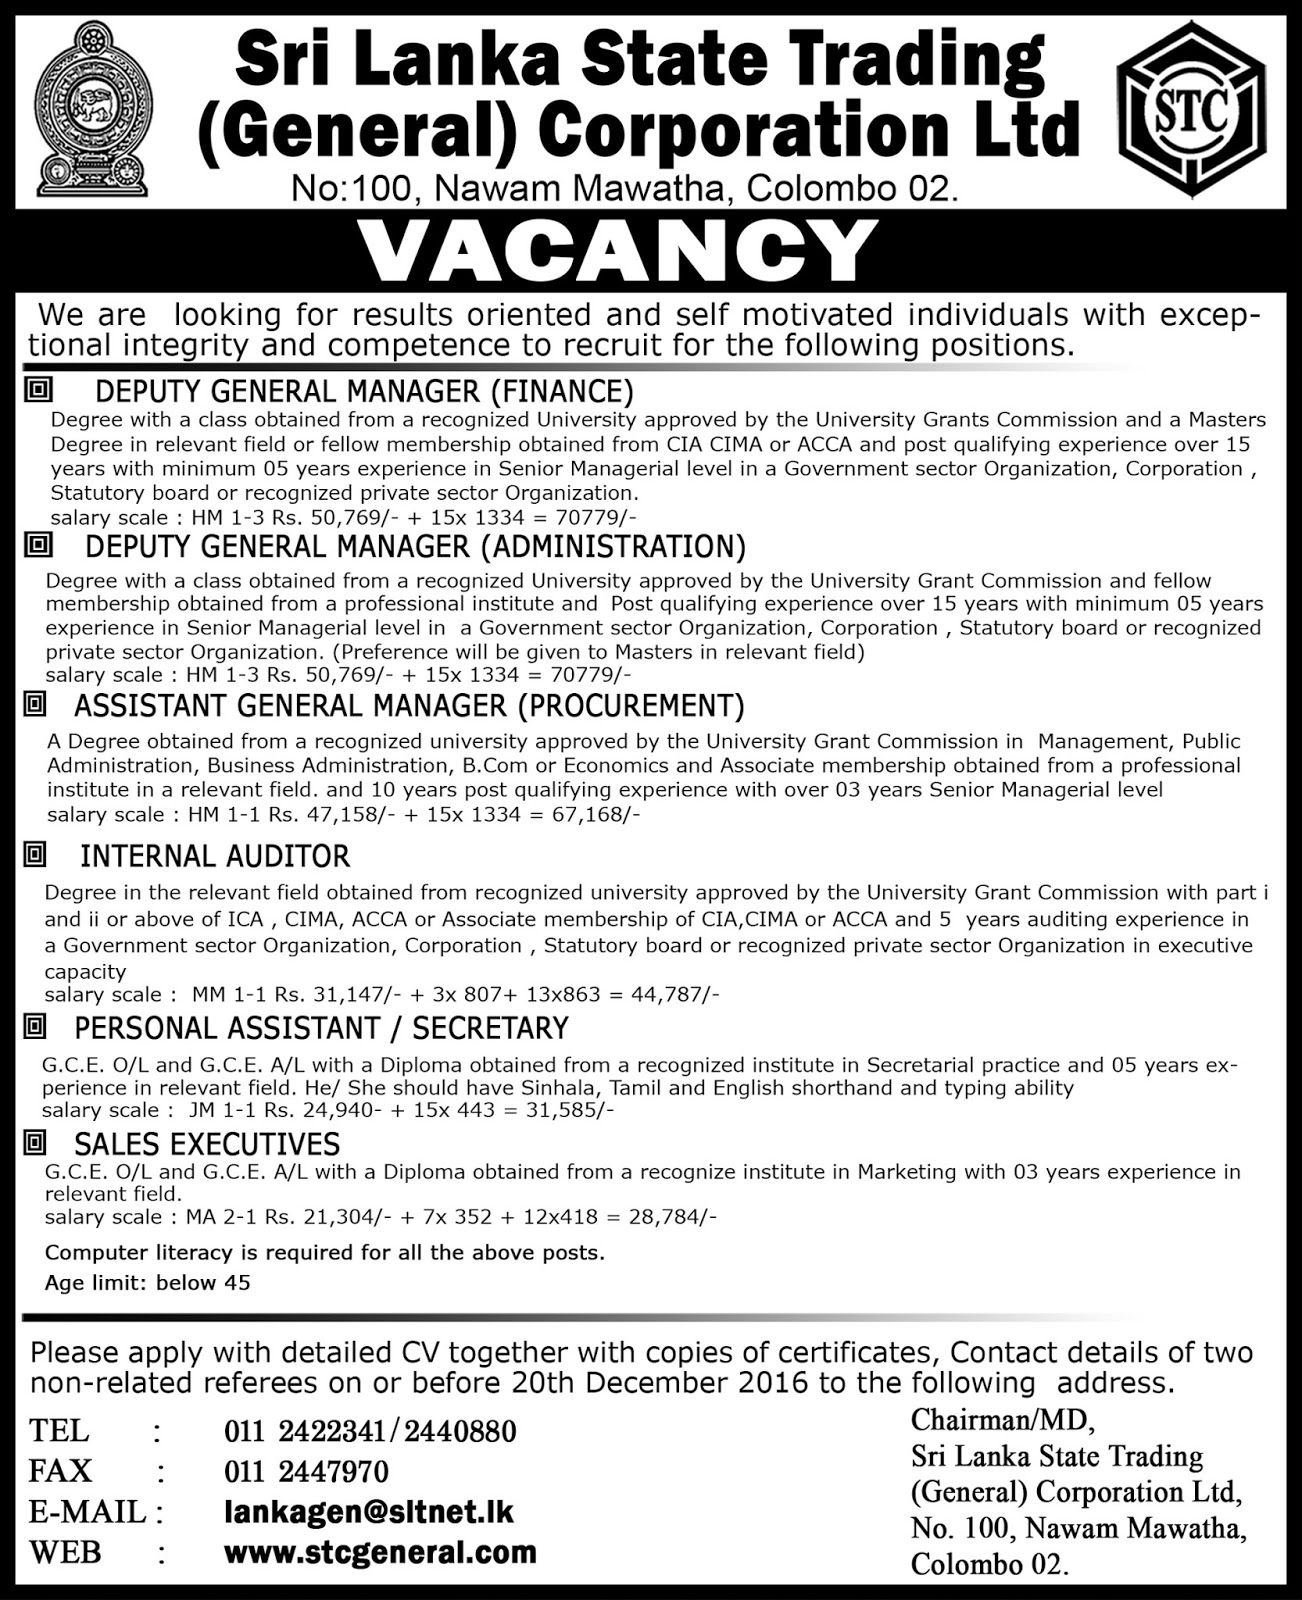 Deputy General Managers, Internal Auditor, Personal